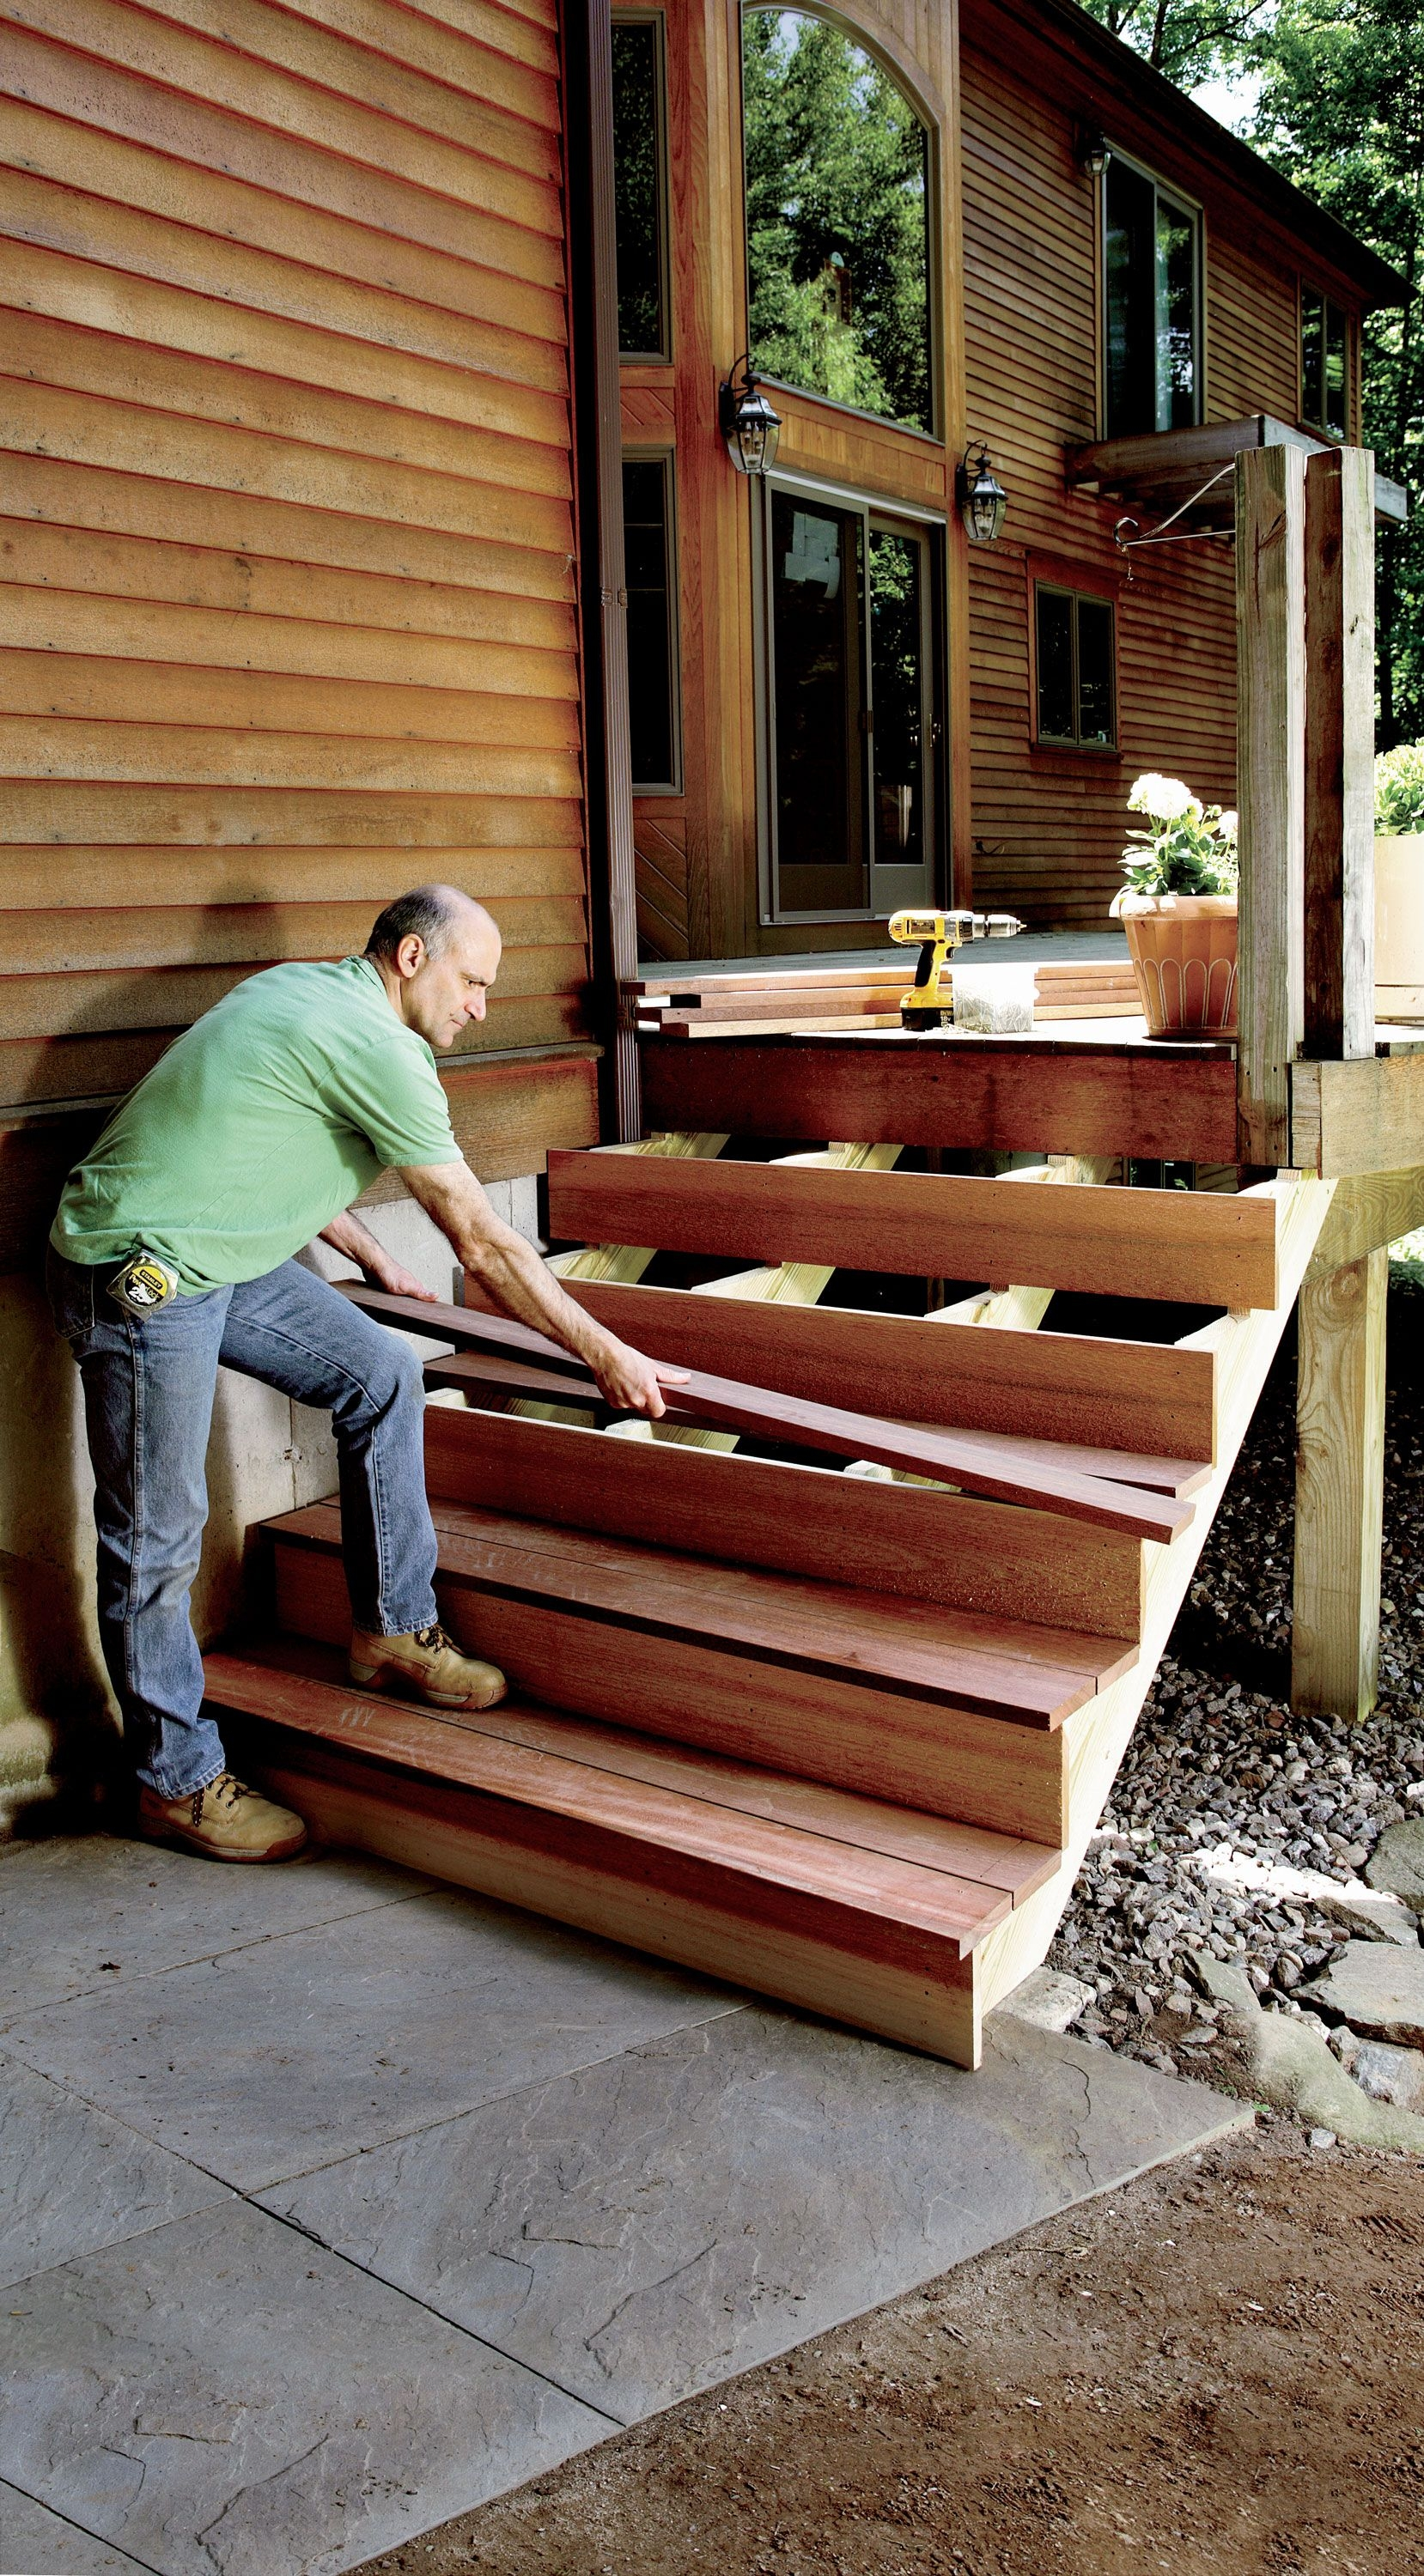 How To Build Stairs Stairs Design Plans | 2 Step Outdoor Stairs | Outdoor | Wooden | Free Standing | Cascading | Multi Colored